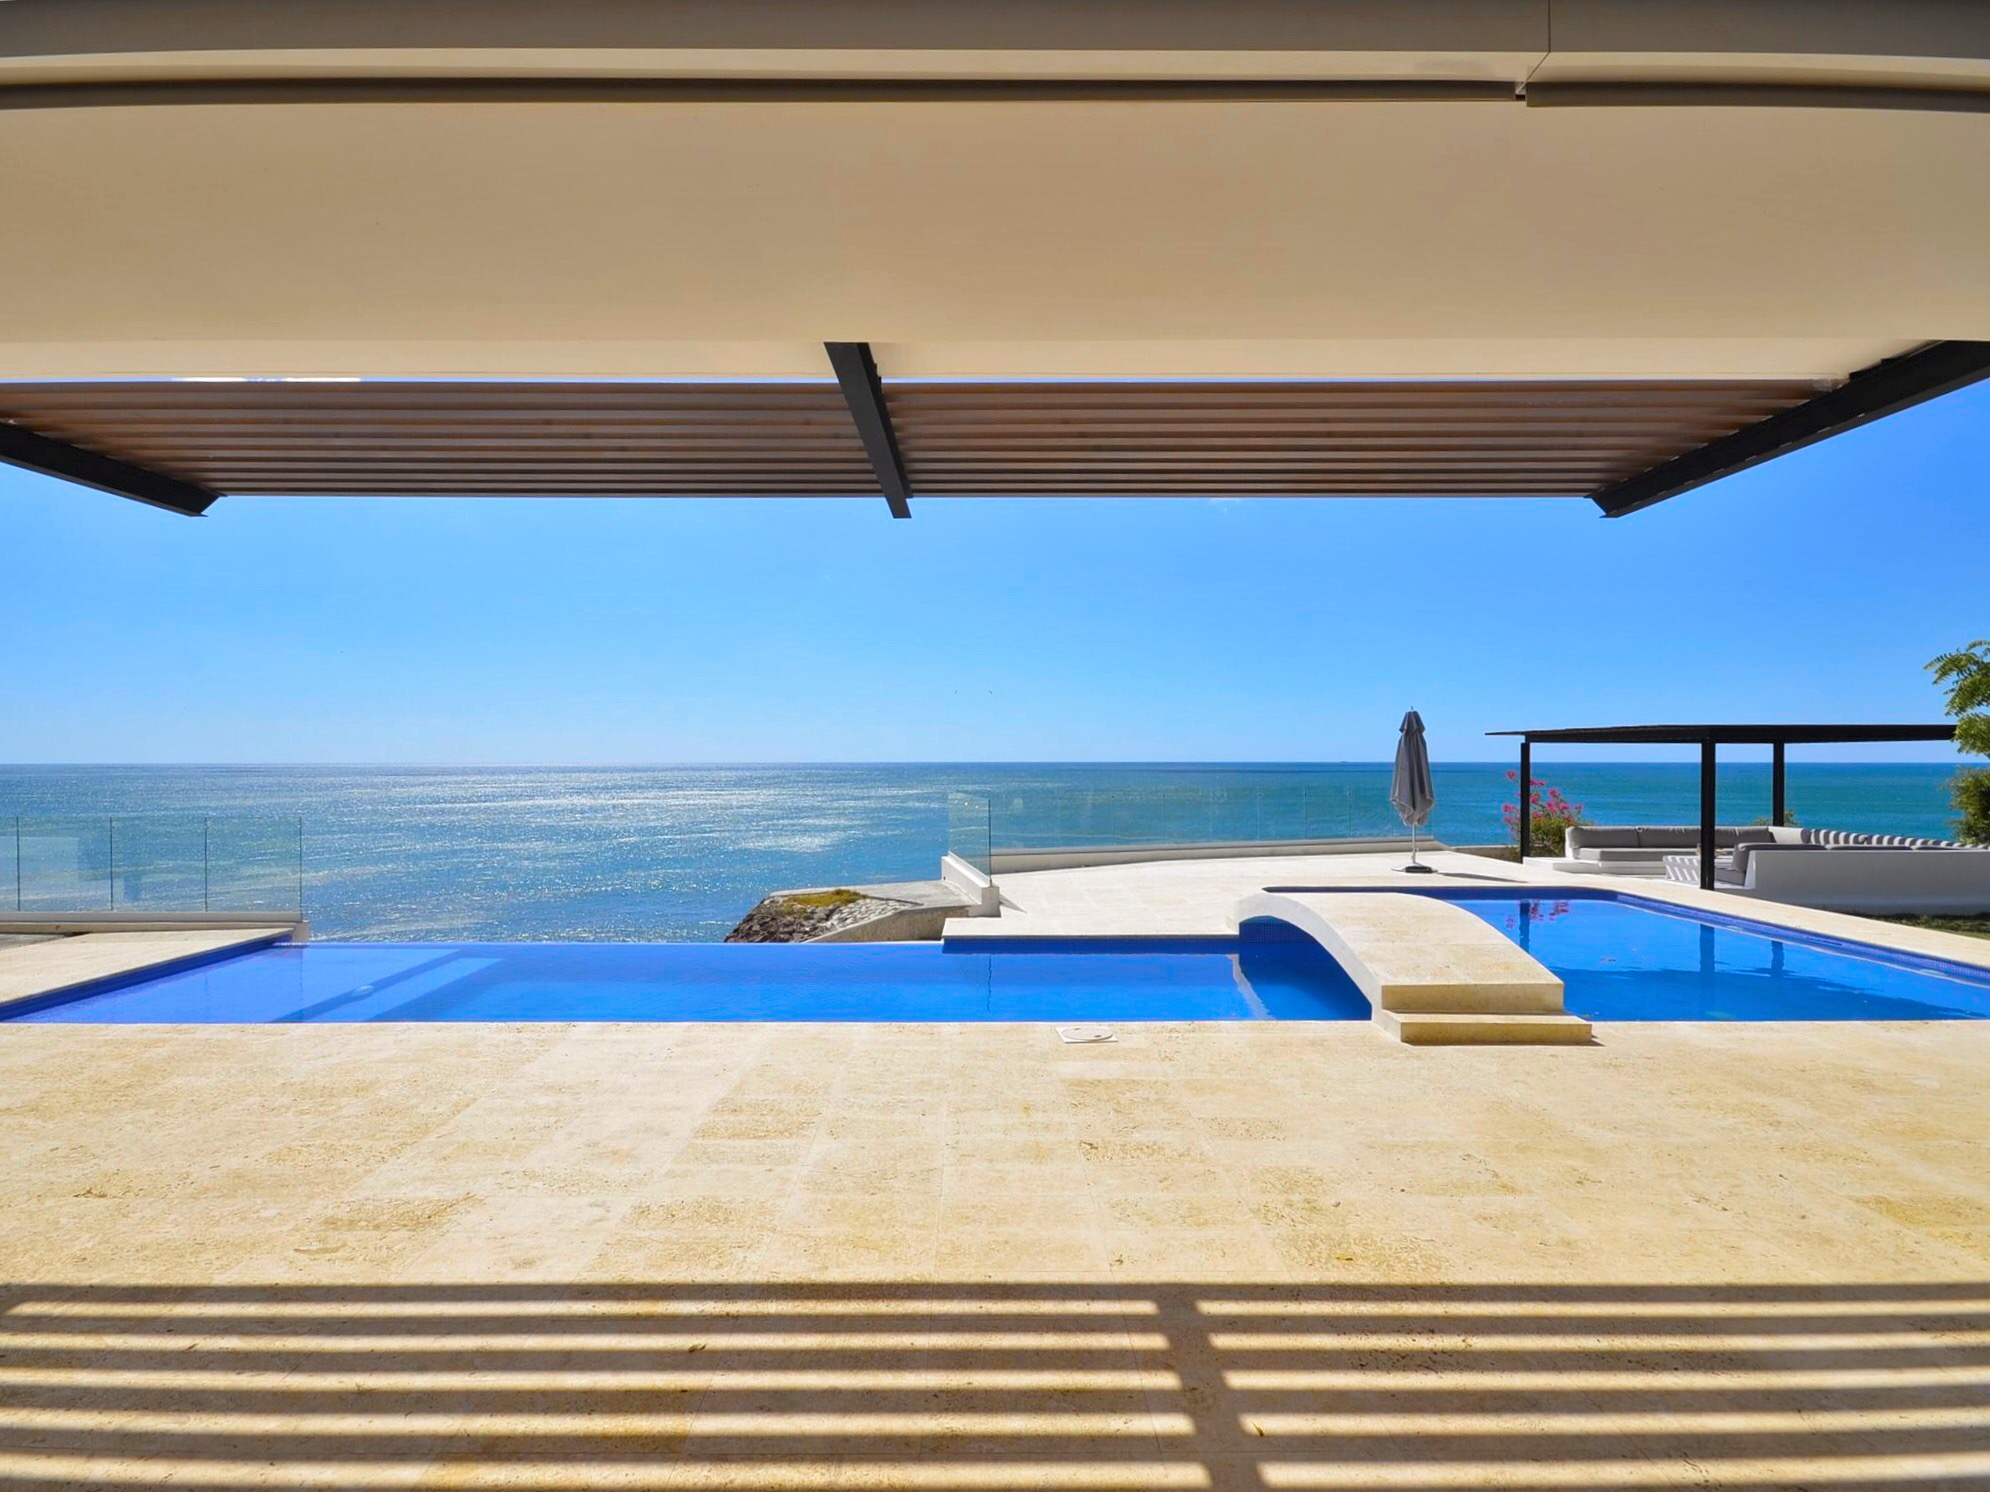 Modern beach, soothing view, interior design, architect work, Sorrento Beach Residence